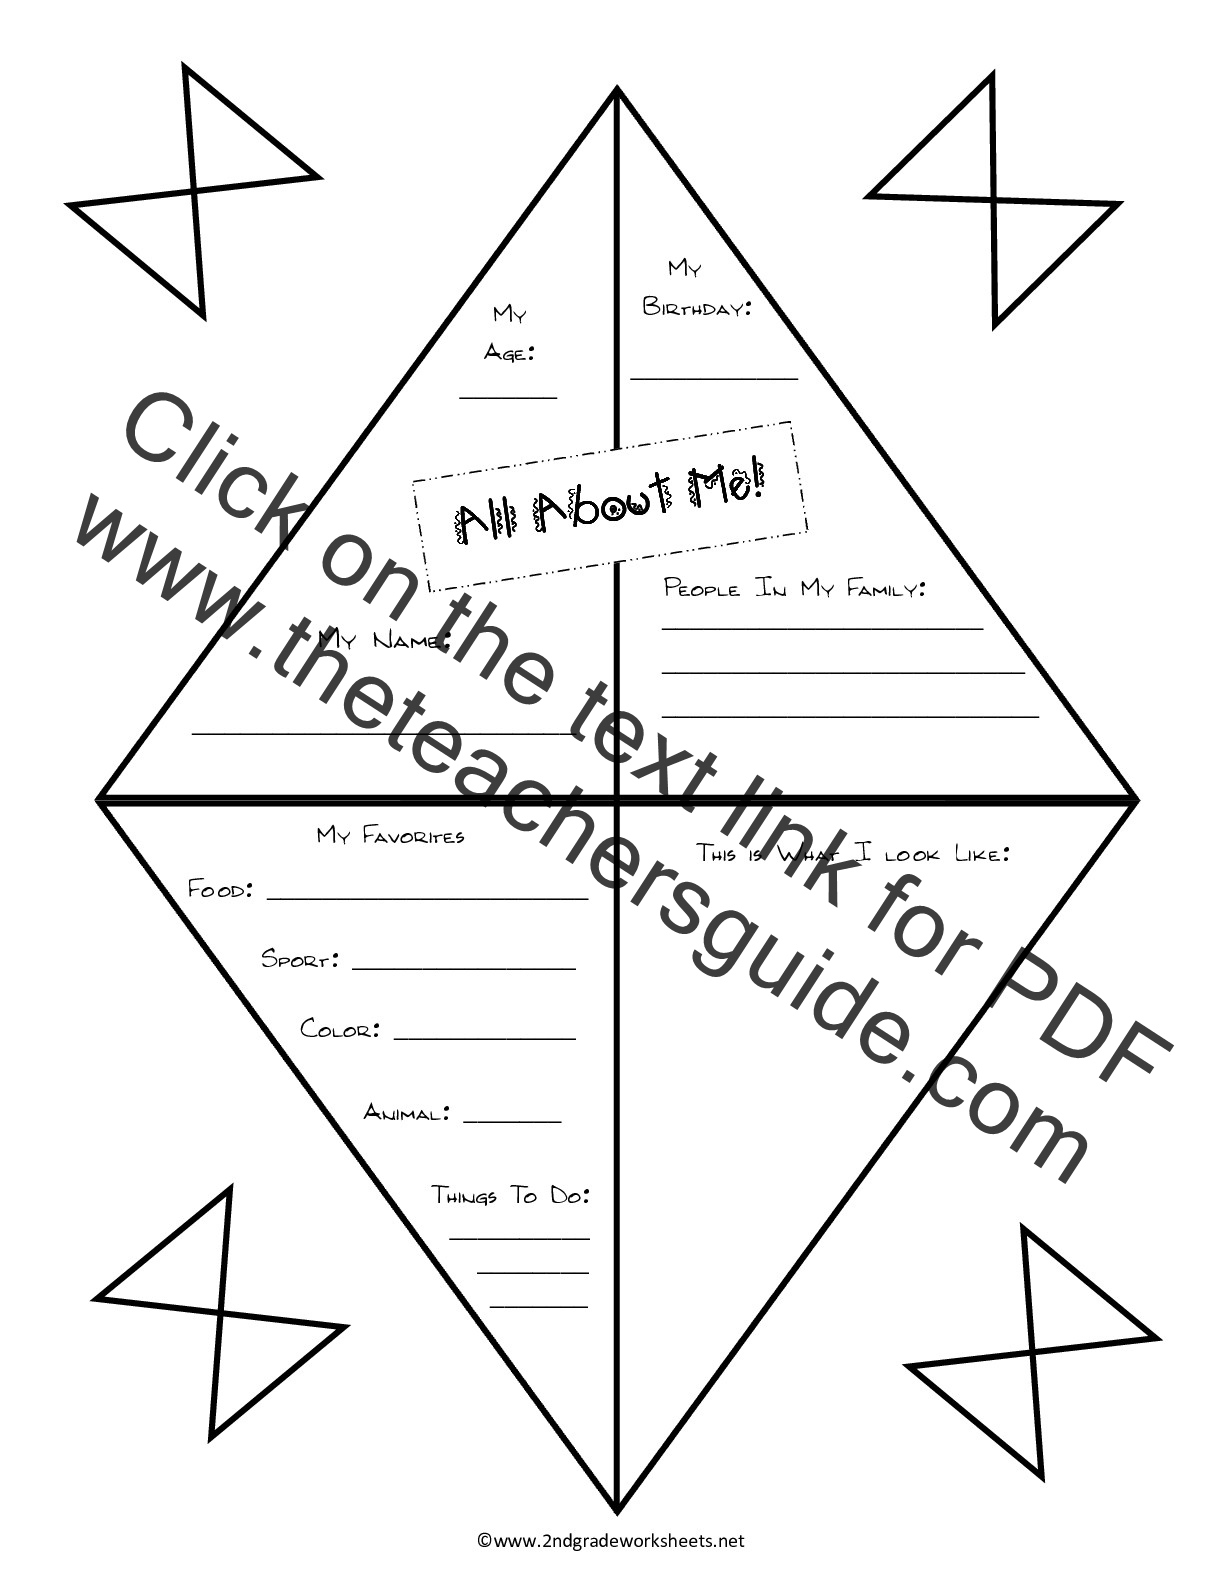 Free Back To School Worksheets And Printouts